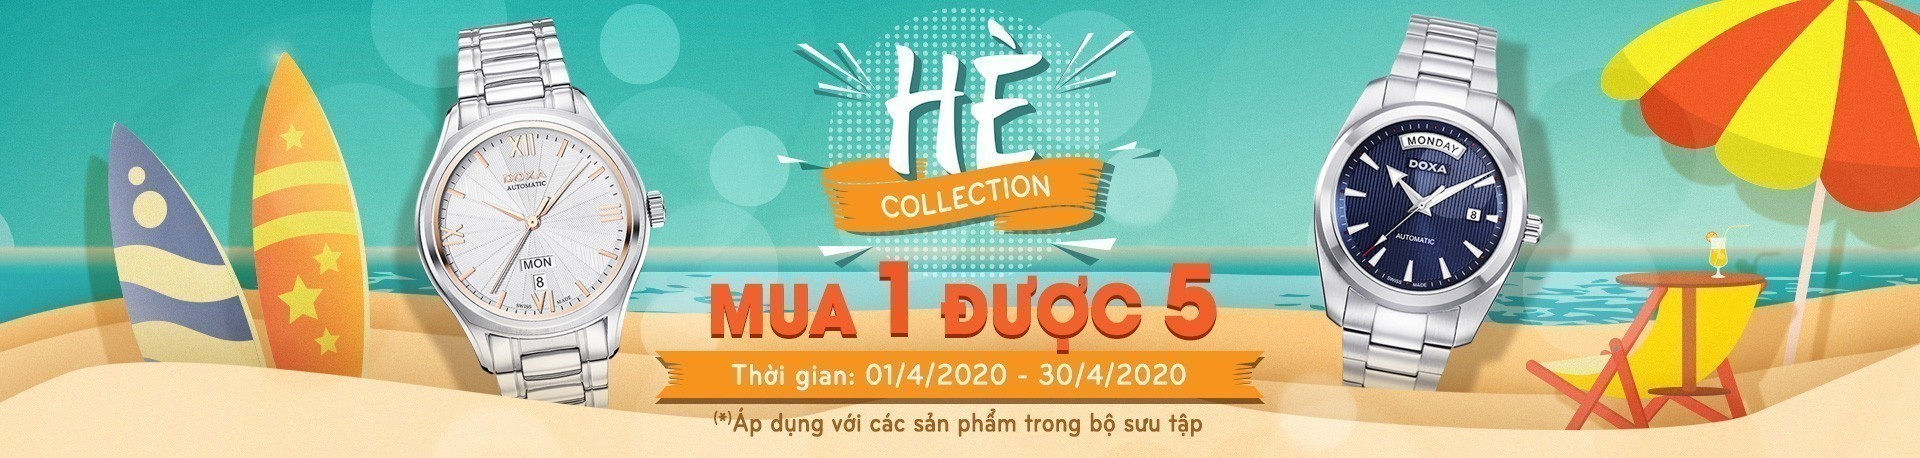 banner-he-collection-new